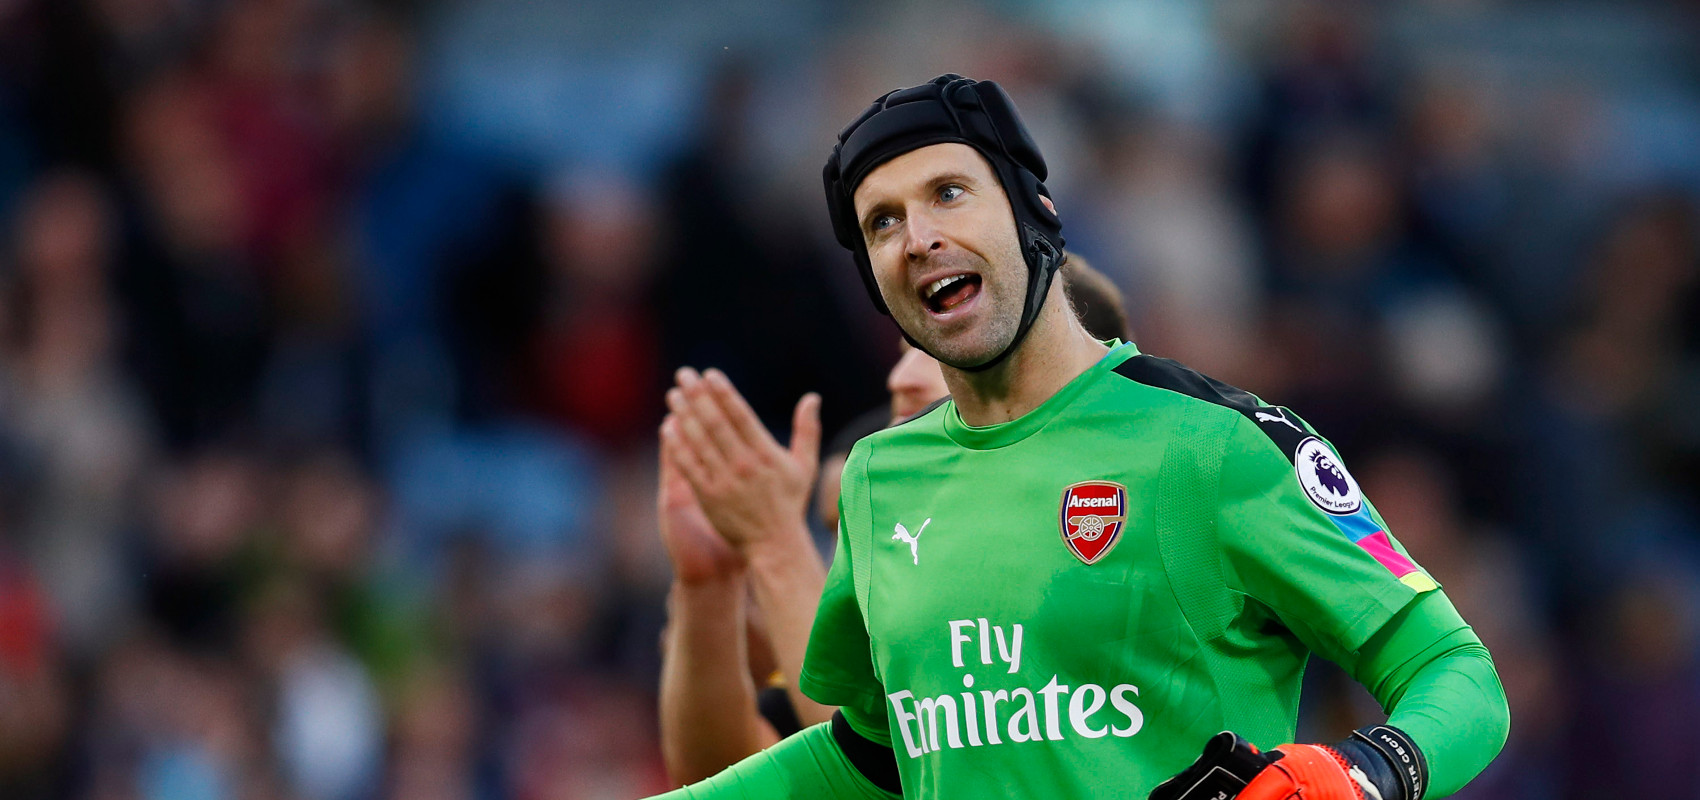 → Which £4.5m shot-stopper was top of the goalkeepers' FPL points table going into Gameweek 38, eventually finishing second behind Petr Čech?